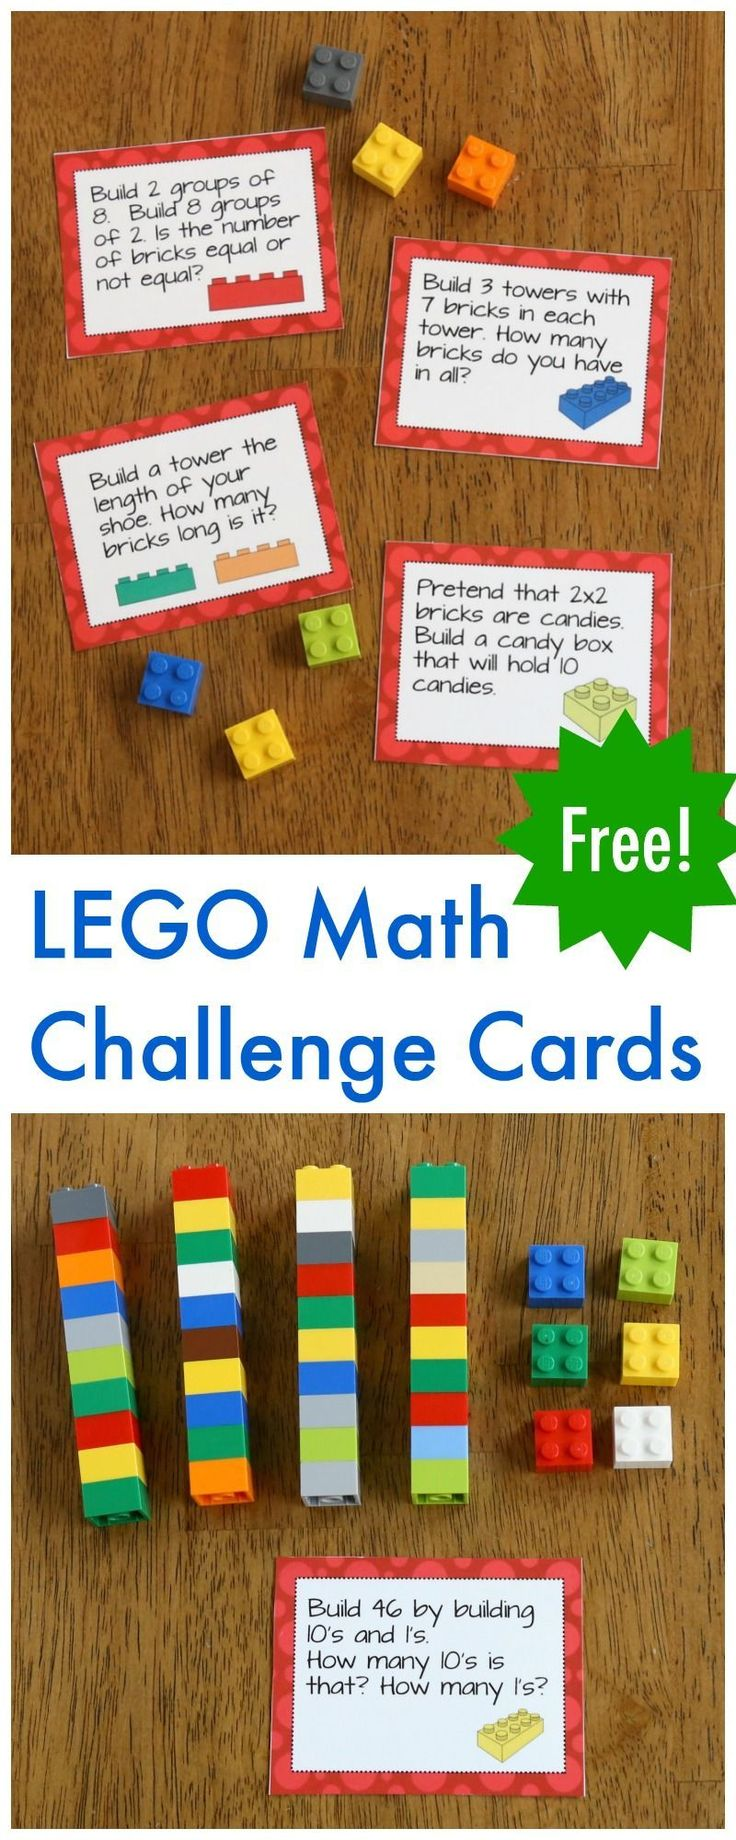 Free LEGO Math Printable Challenge Cards! Fun way to work on math facts in first or second grade. This would be a fun STEM center too! #lego #math #firstgrade #secondgrade #learnmathfacts #mathteacher